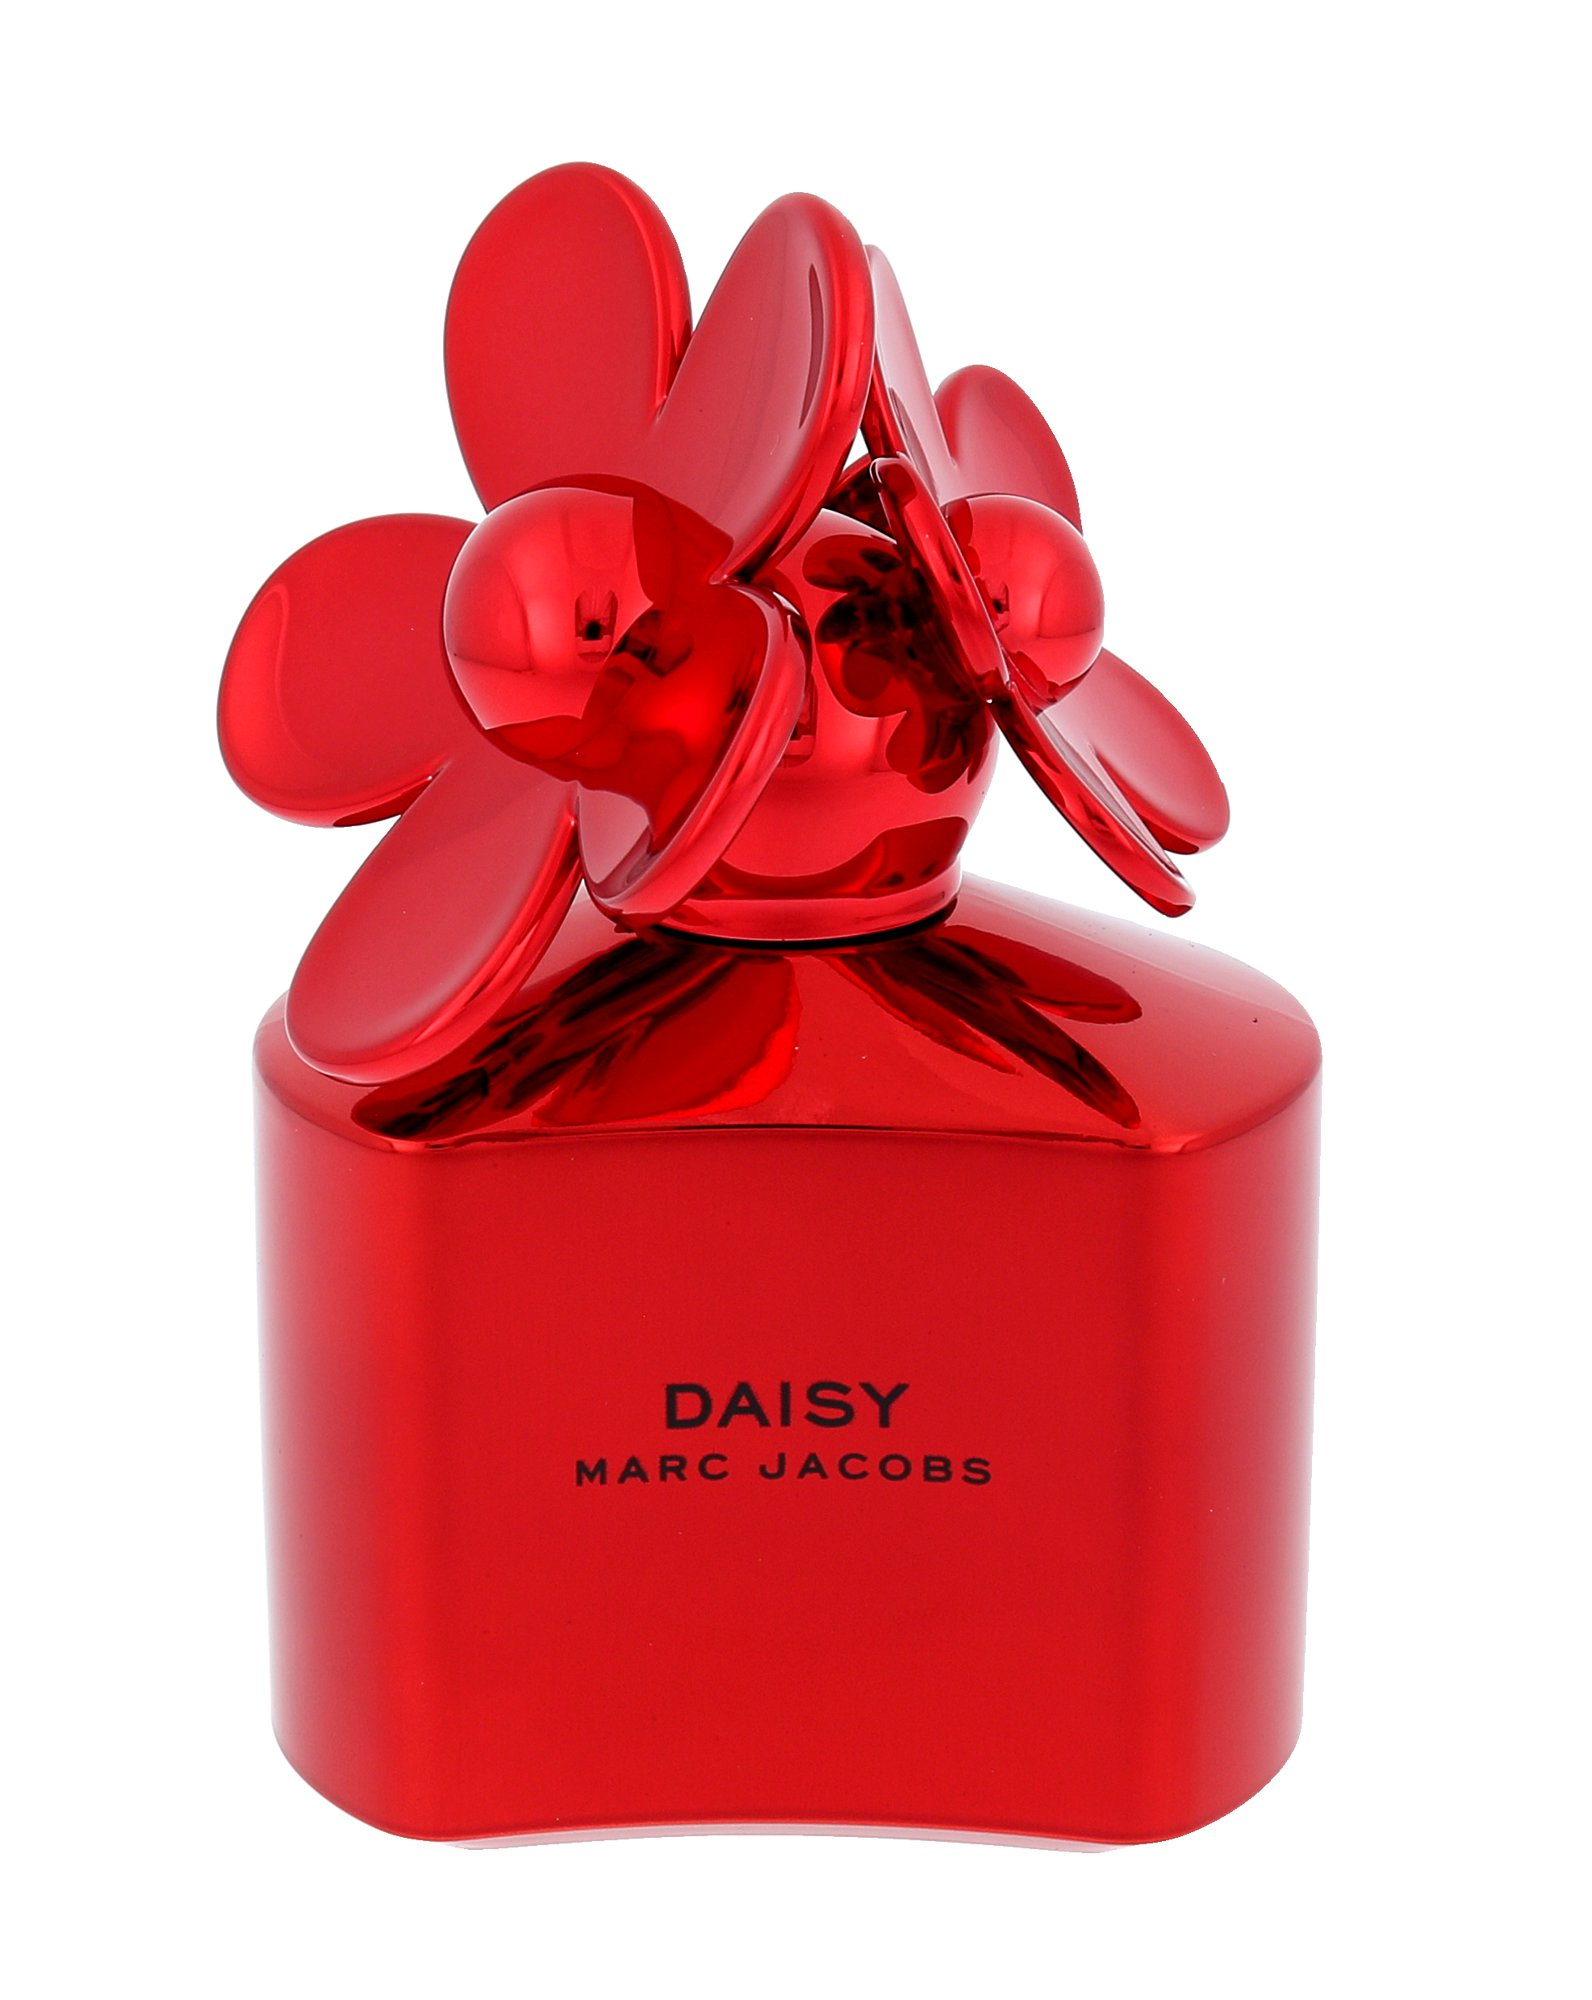 Marc Jacobs Daisy Shine Red Edition, Toaletná voda 100ml